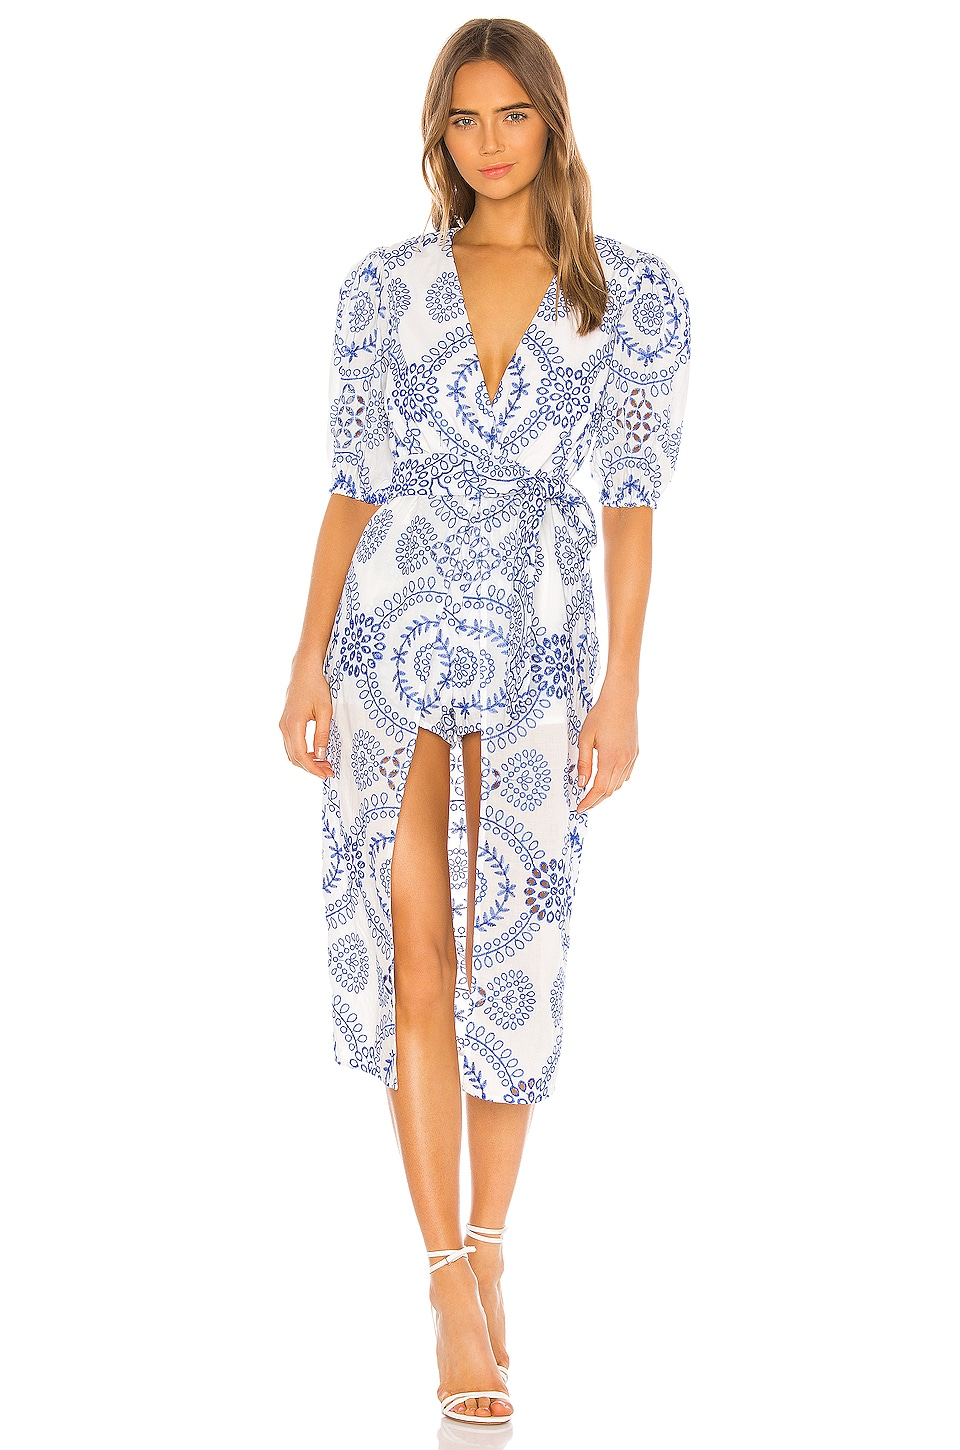 Lovers + Friends Jennings Romper in White & Blue